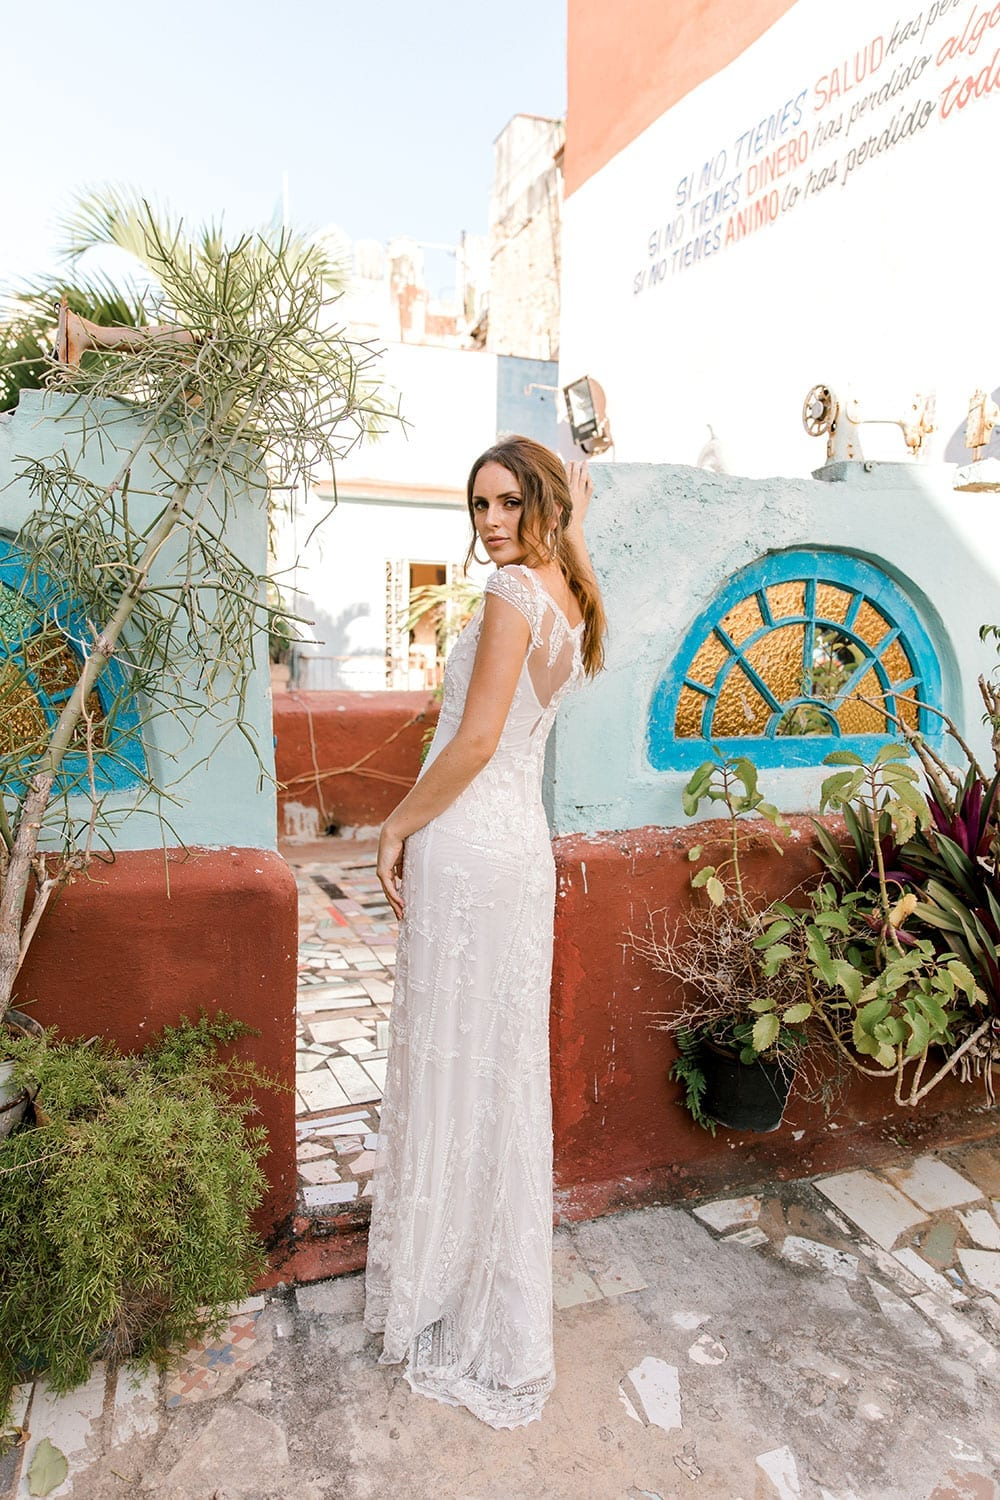 Model wearing Vinka Design Lola Wedding Dress, a Boat-Neck Lace Wedding Gown in the colourful streets and archways of Havana